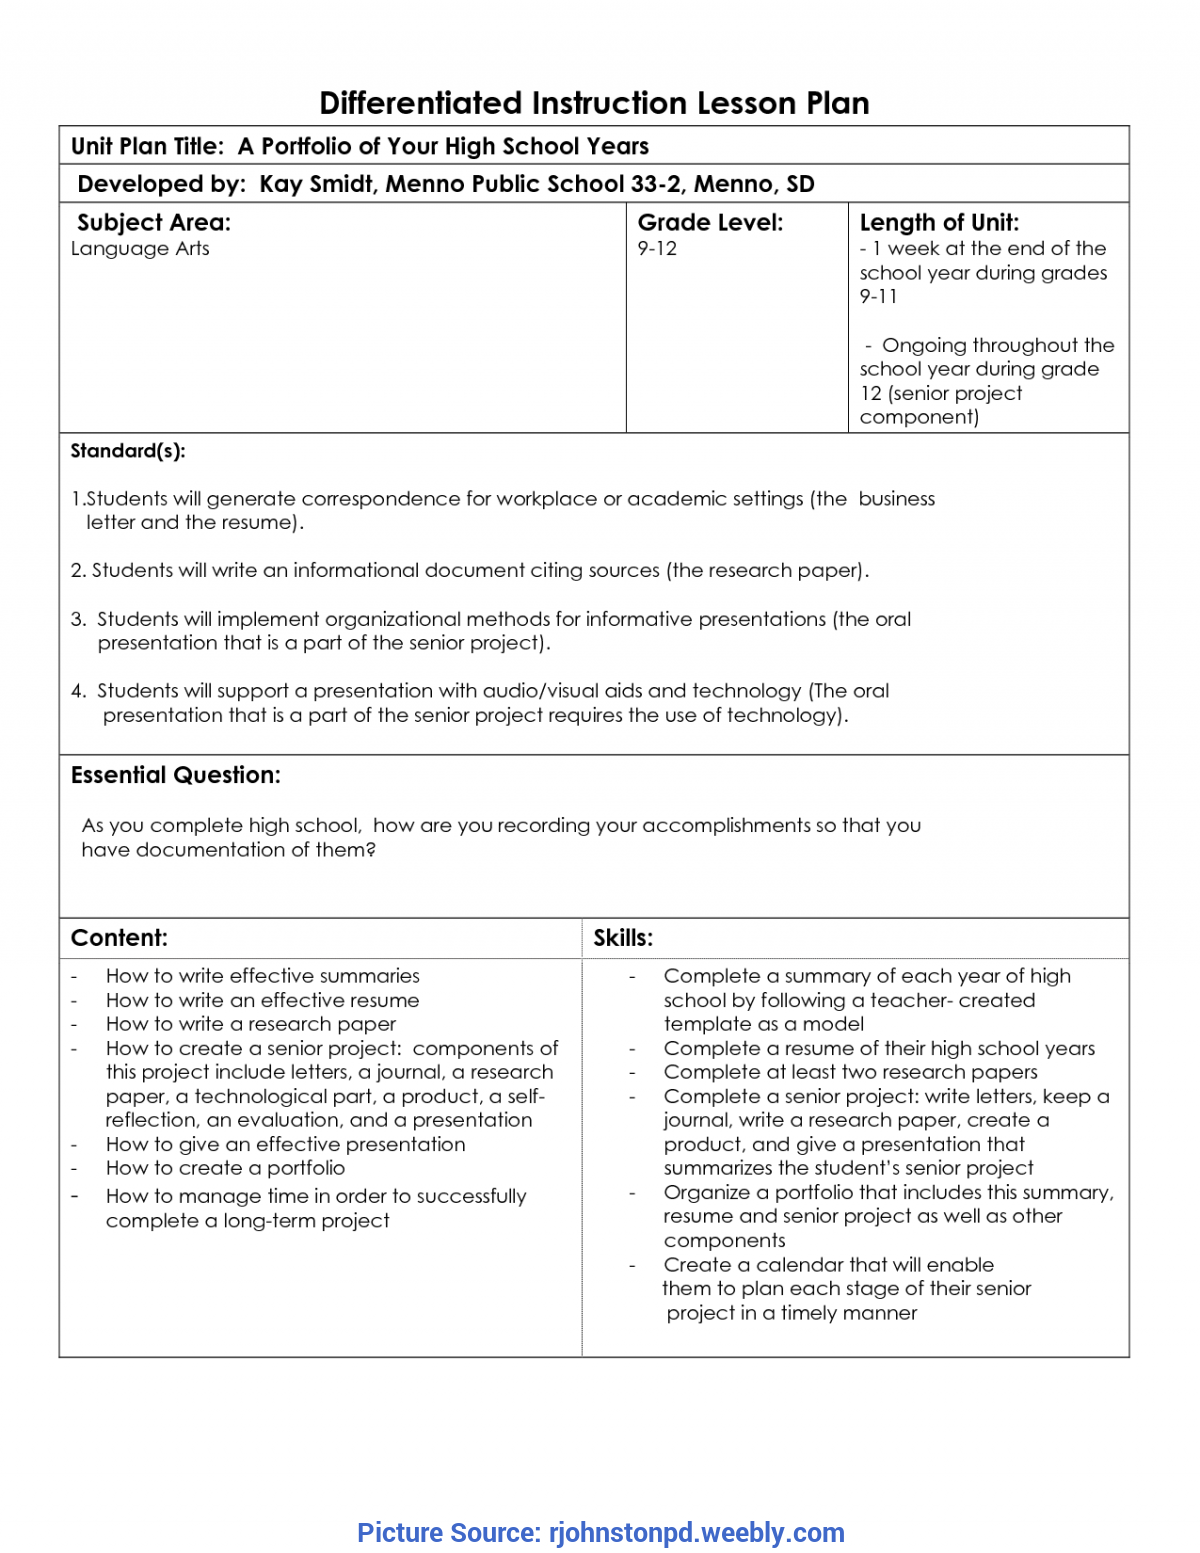 Useful Lesson Plan Template Differentiated Instruction Free Instruction - Professional Develop